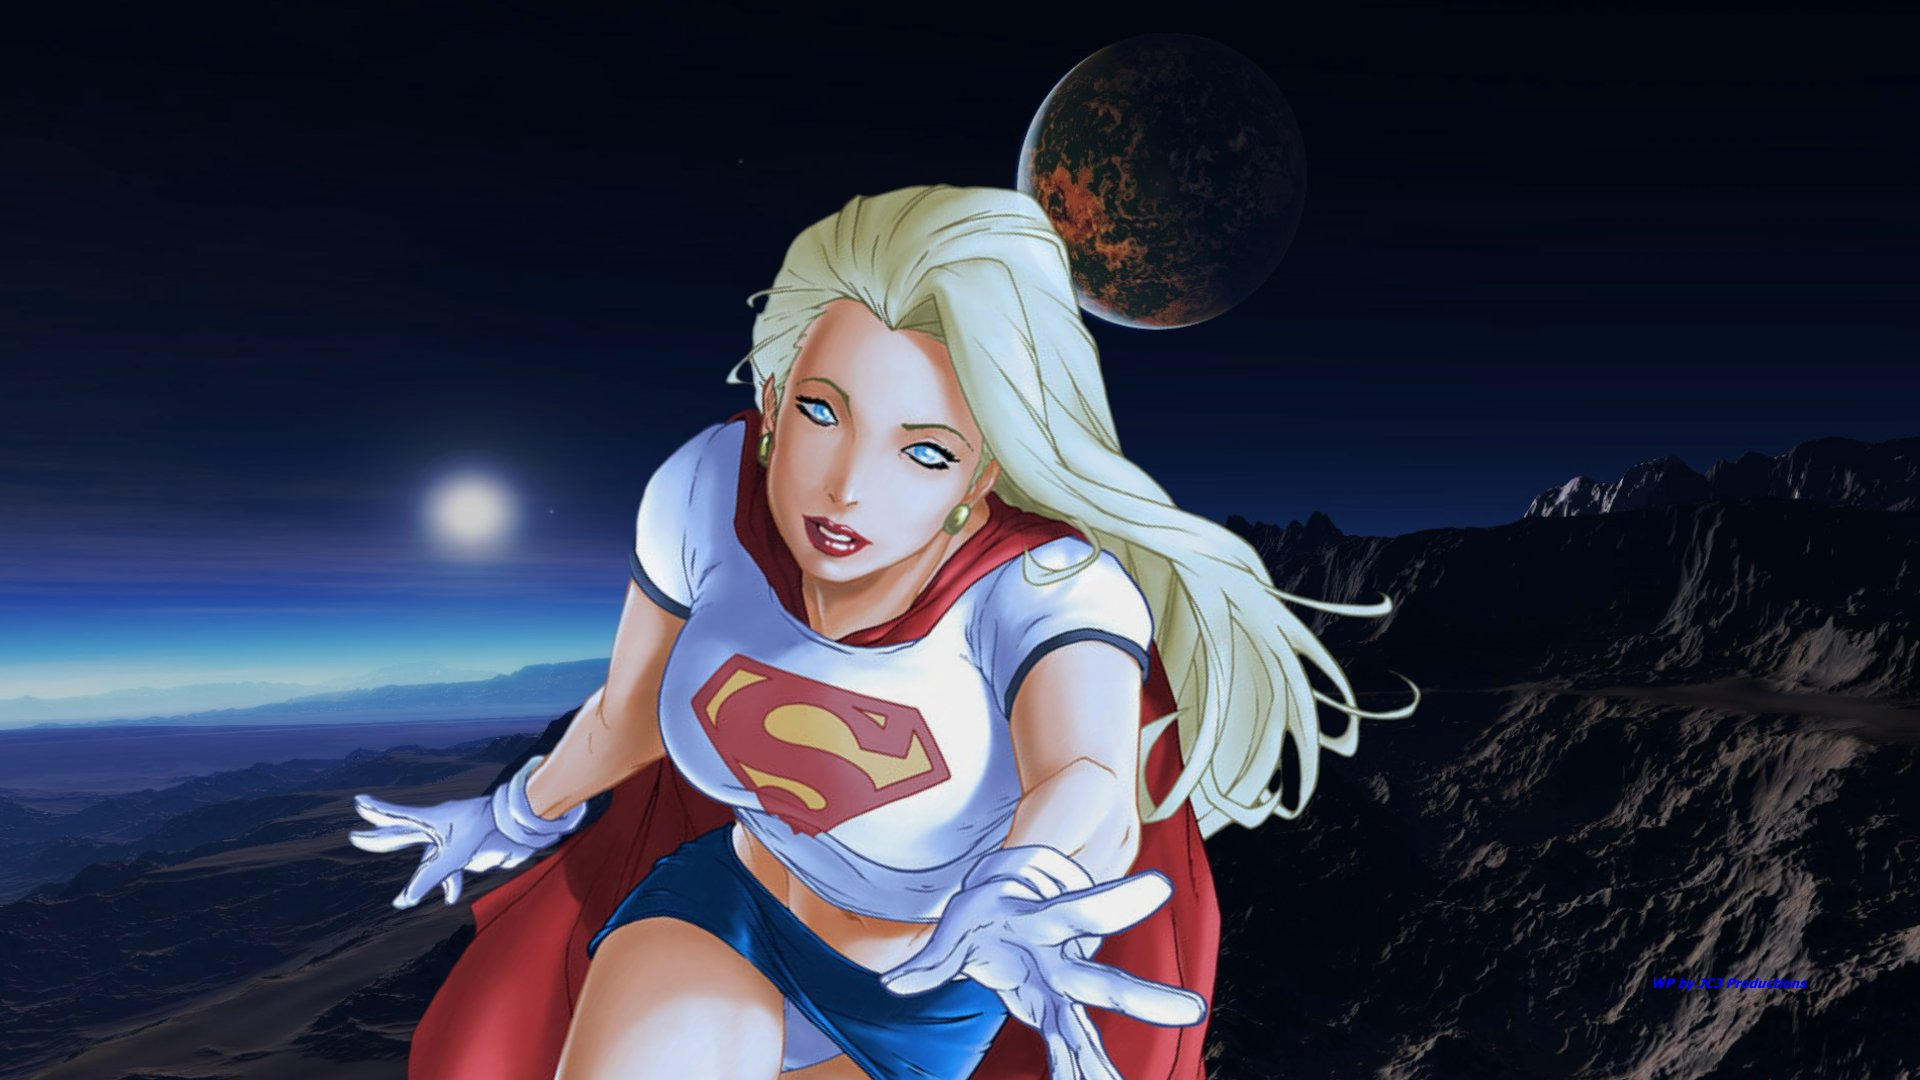 dc comics images Supergirl wallpaper - Over Mountain Range wallpaper 2 HD wallpaper and background photos